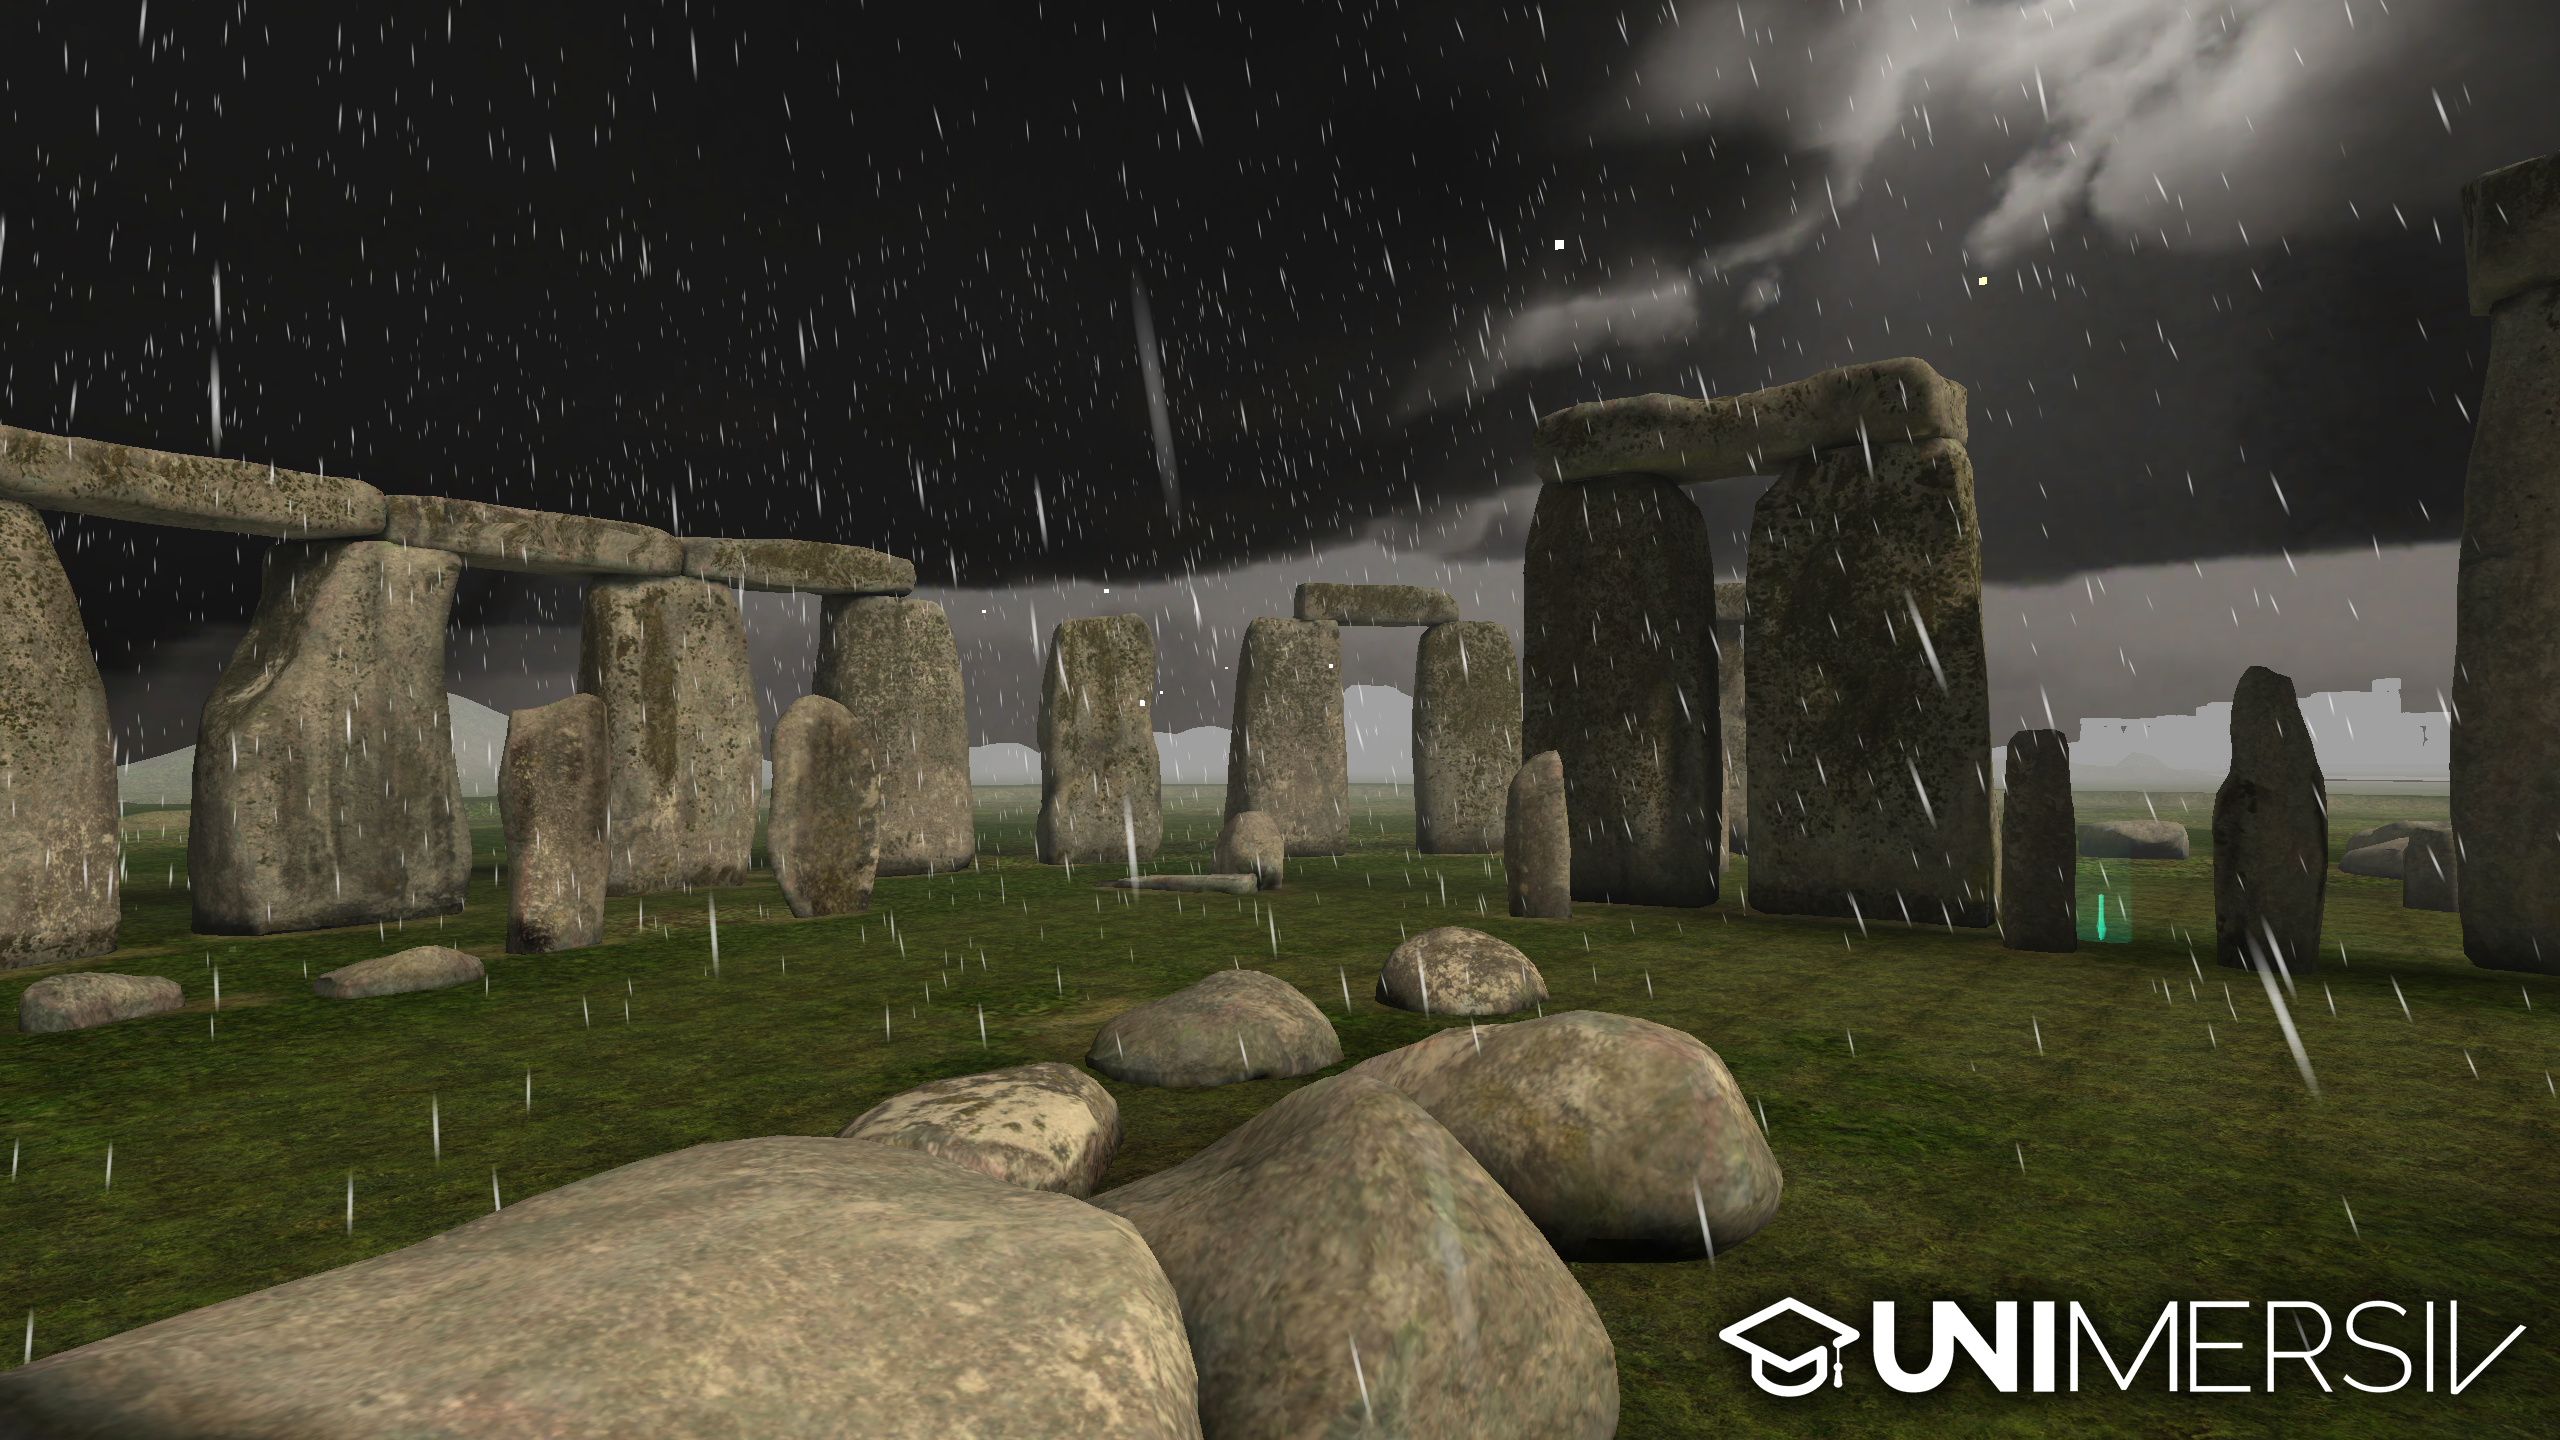 Virtual Reality Education - Stonehenge VR